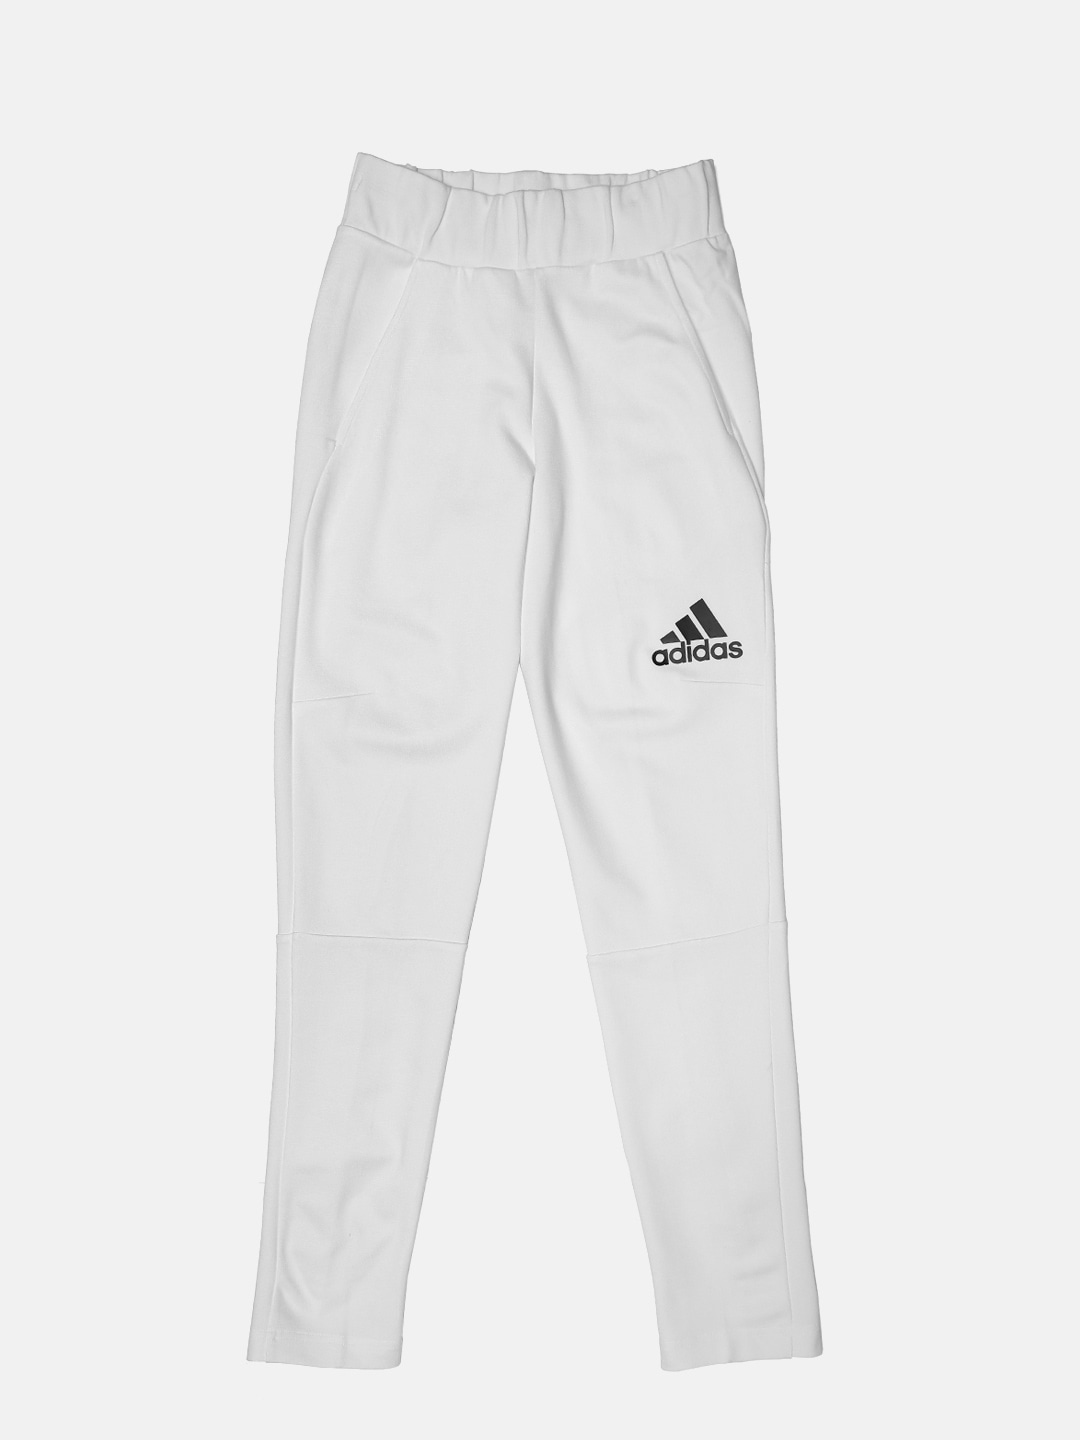 adidas white track pants,blue adidas originals -OFF61% Free ...